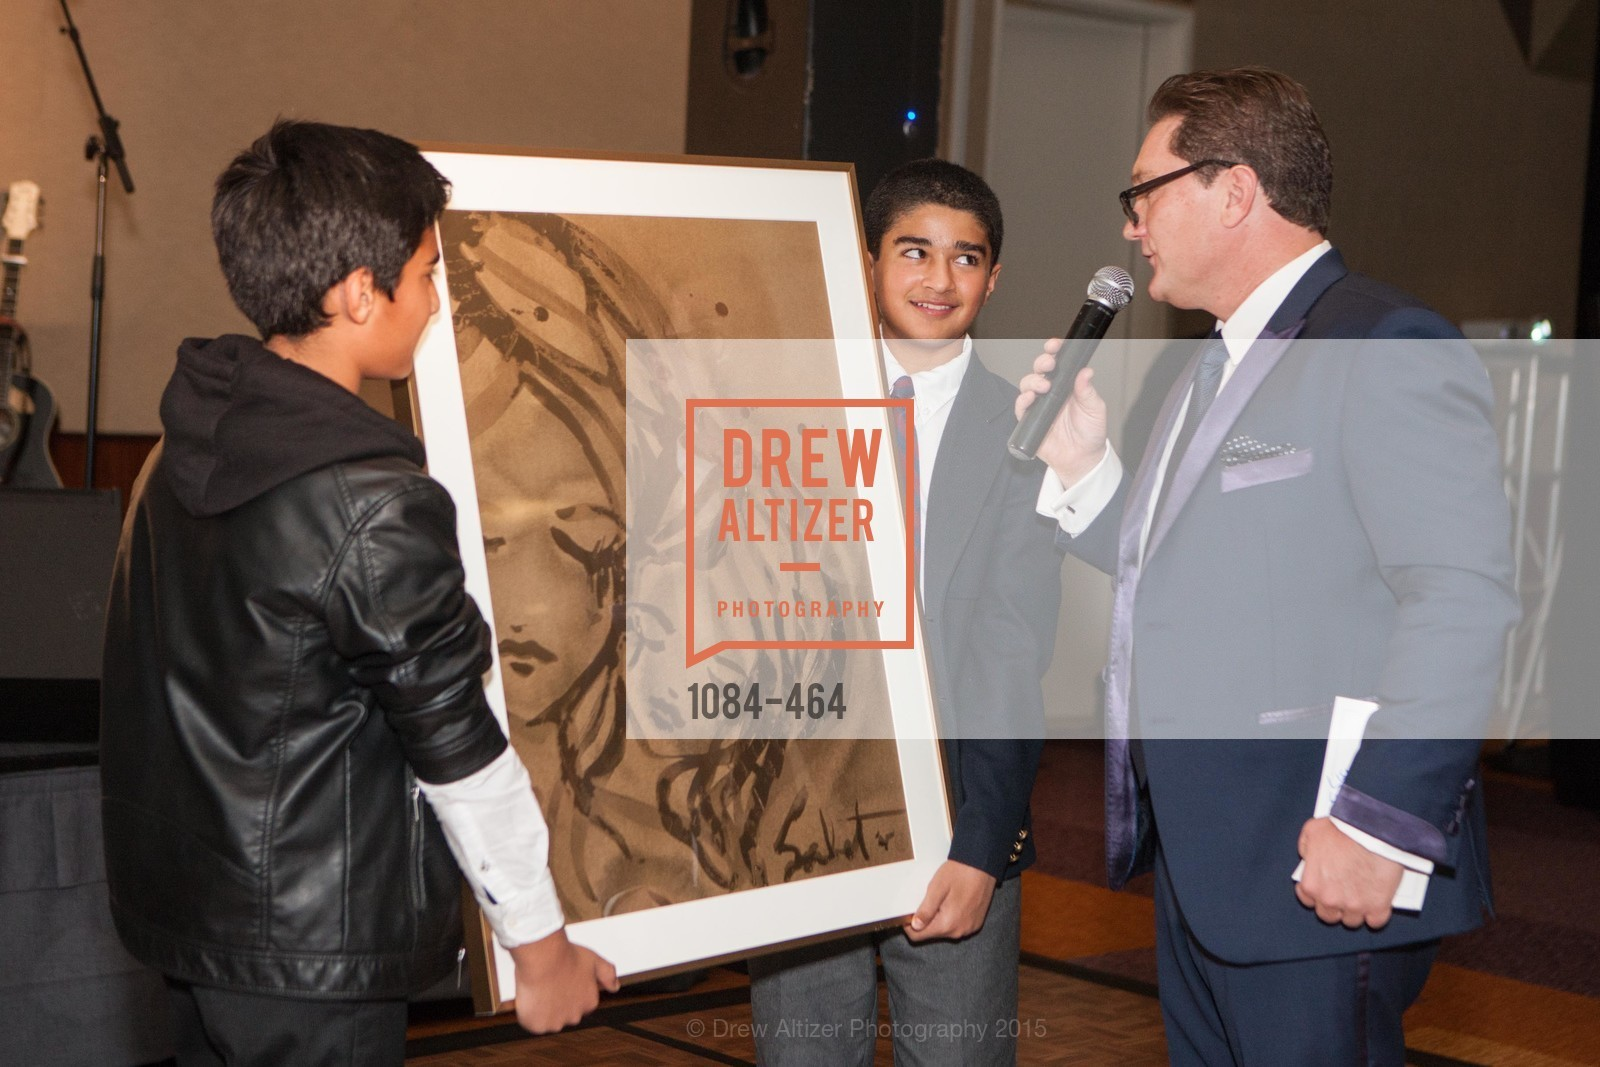 Nicholas Farzaneh, Liam Mayclem, Operation Smile Presents THE SAN FRANCISCO 2015 SMILE GALA, InterContinental Hotel, November 7th, 2015,Drew Altizer, Drew Altizer Photography, full-service event agency, private events, San Francisco photographer, photographer California